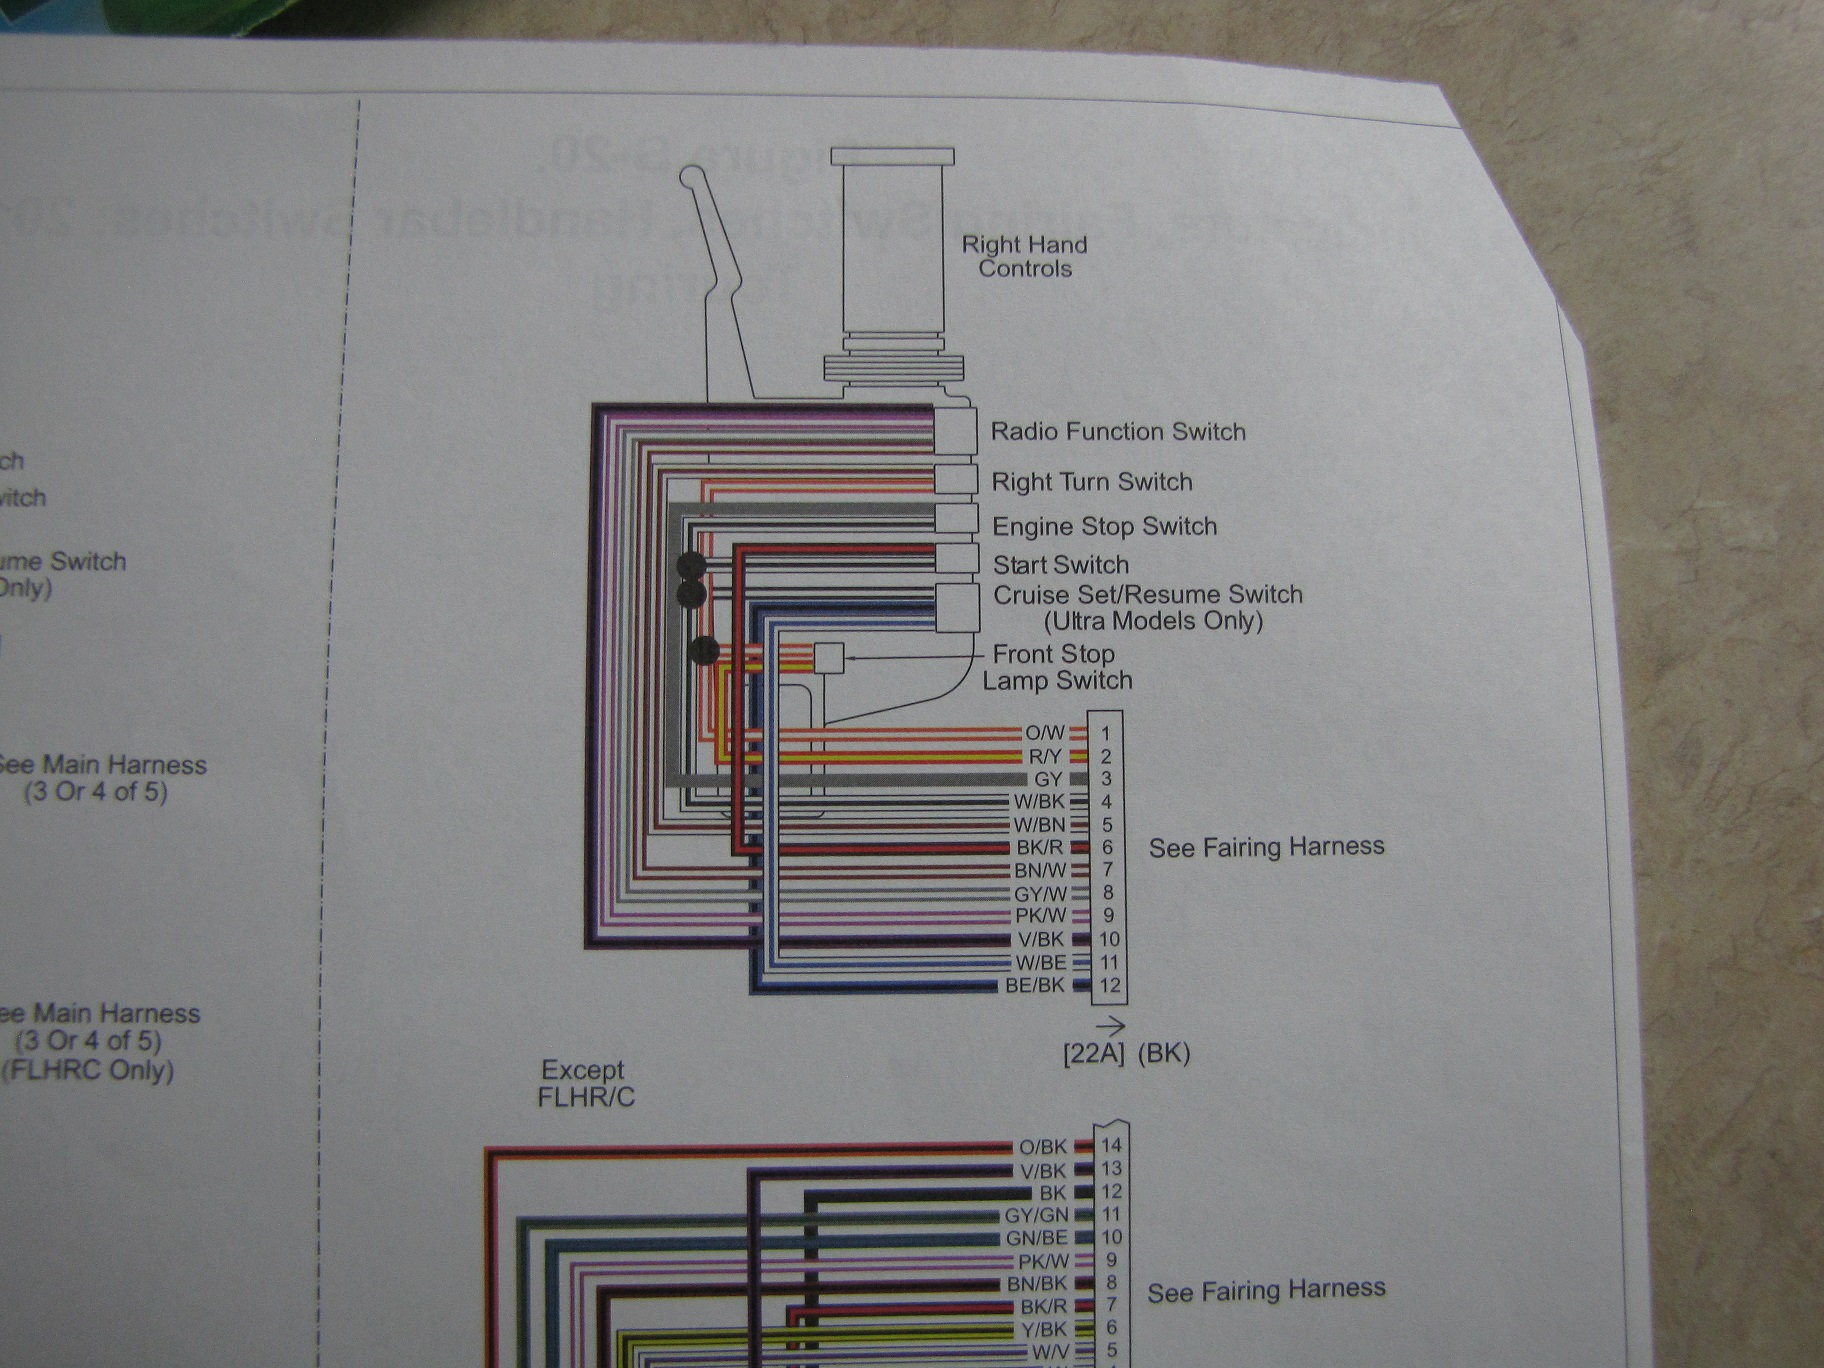 hight resolution of wiring diagram 2013 street glide harley davidson forums here you go from 2012 manual